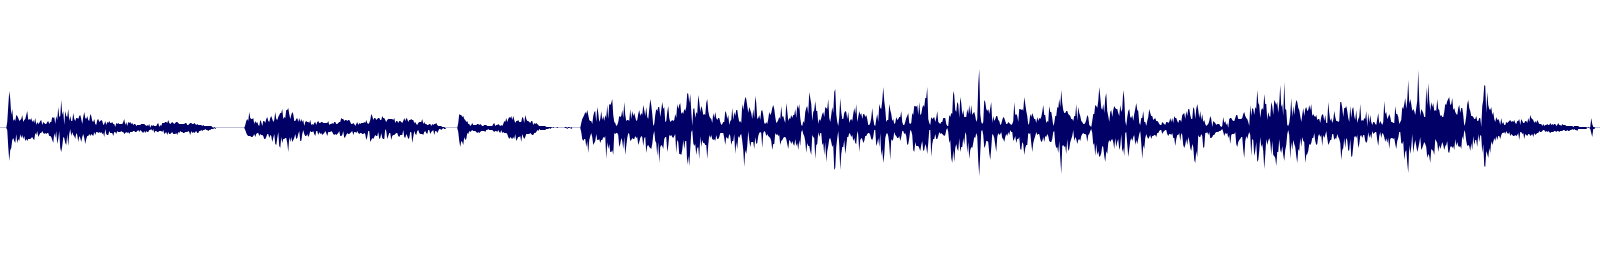 waveform of track #150035